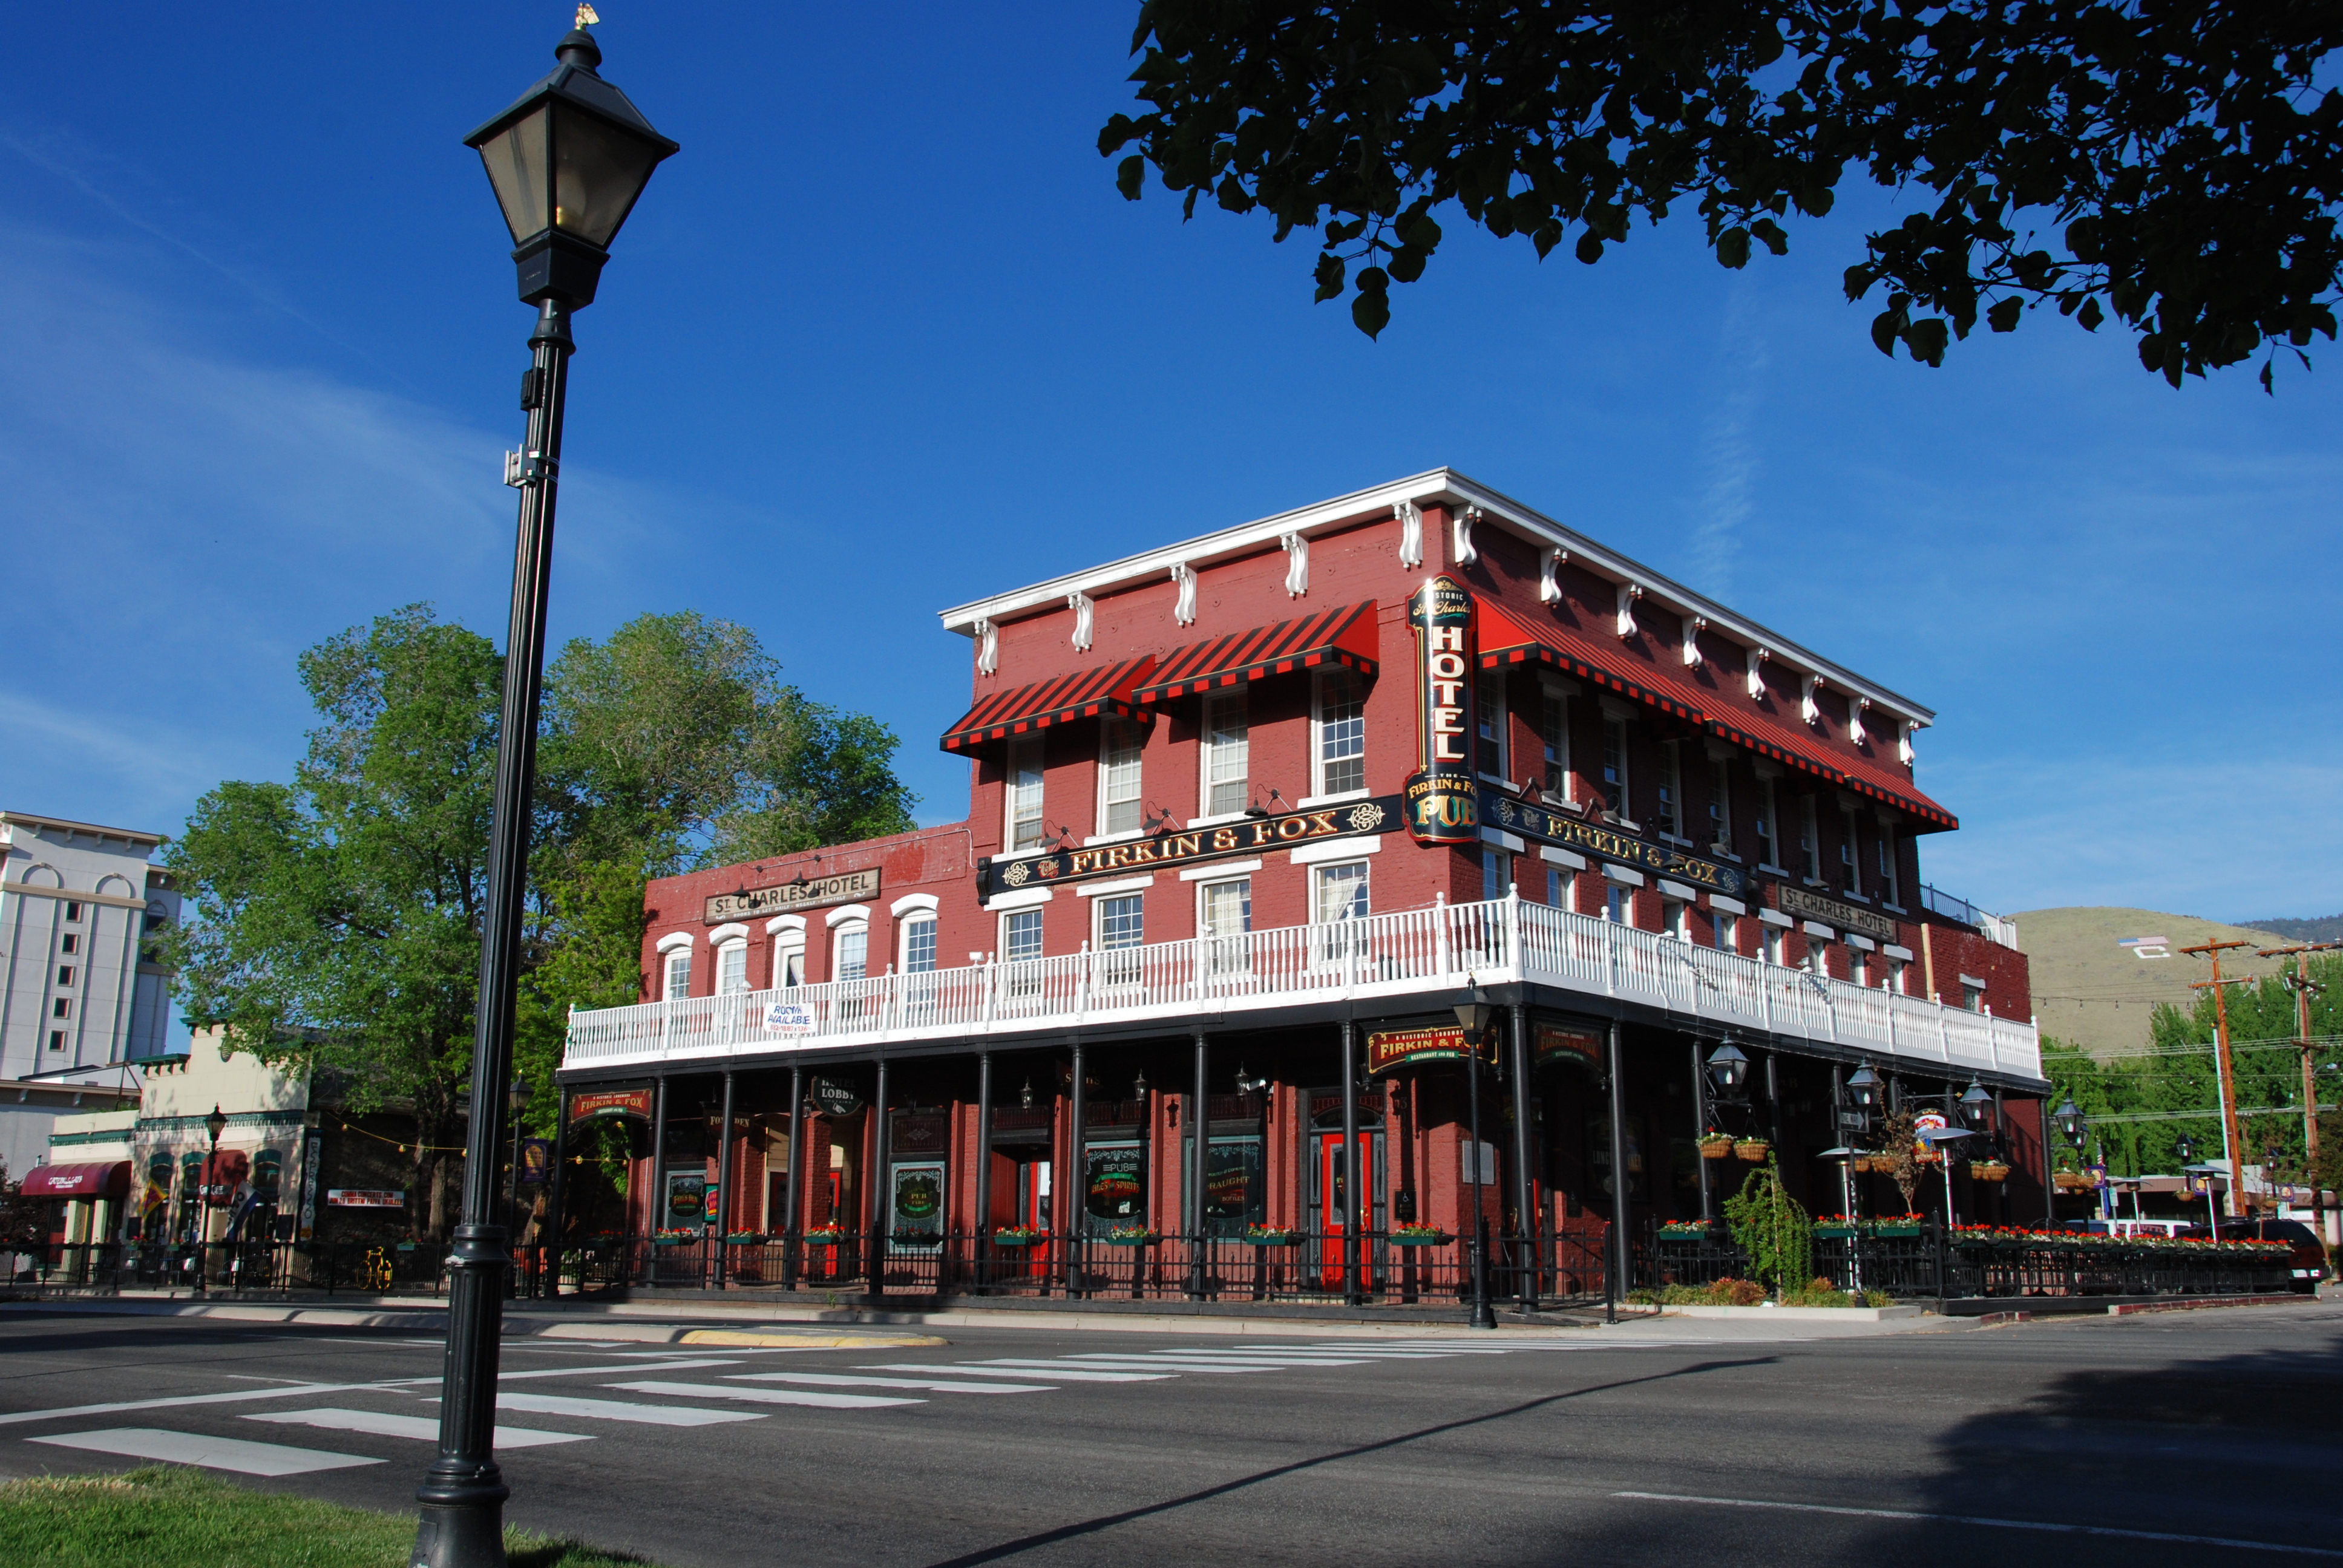 carson nevada nv st hotel charles capital silver cities muller file gold village historic street history location commons hotels wikimedia